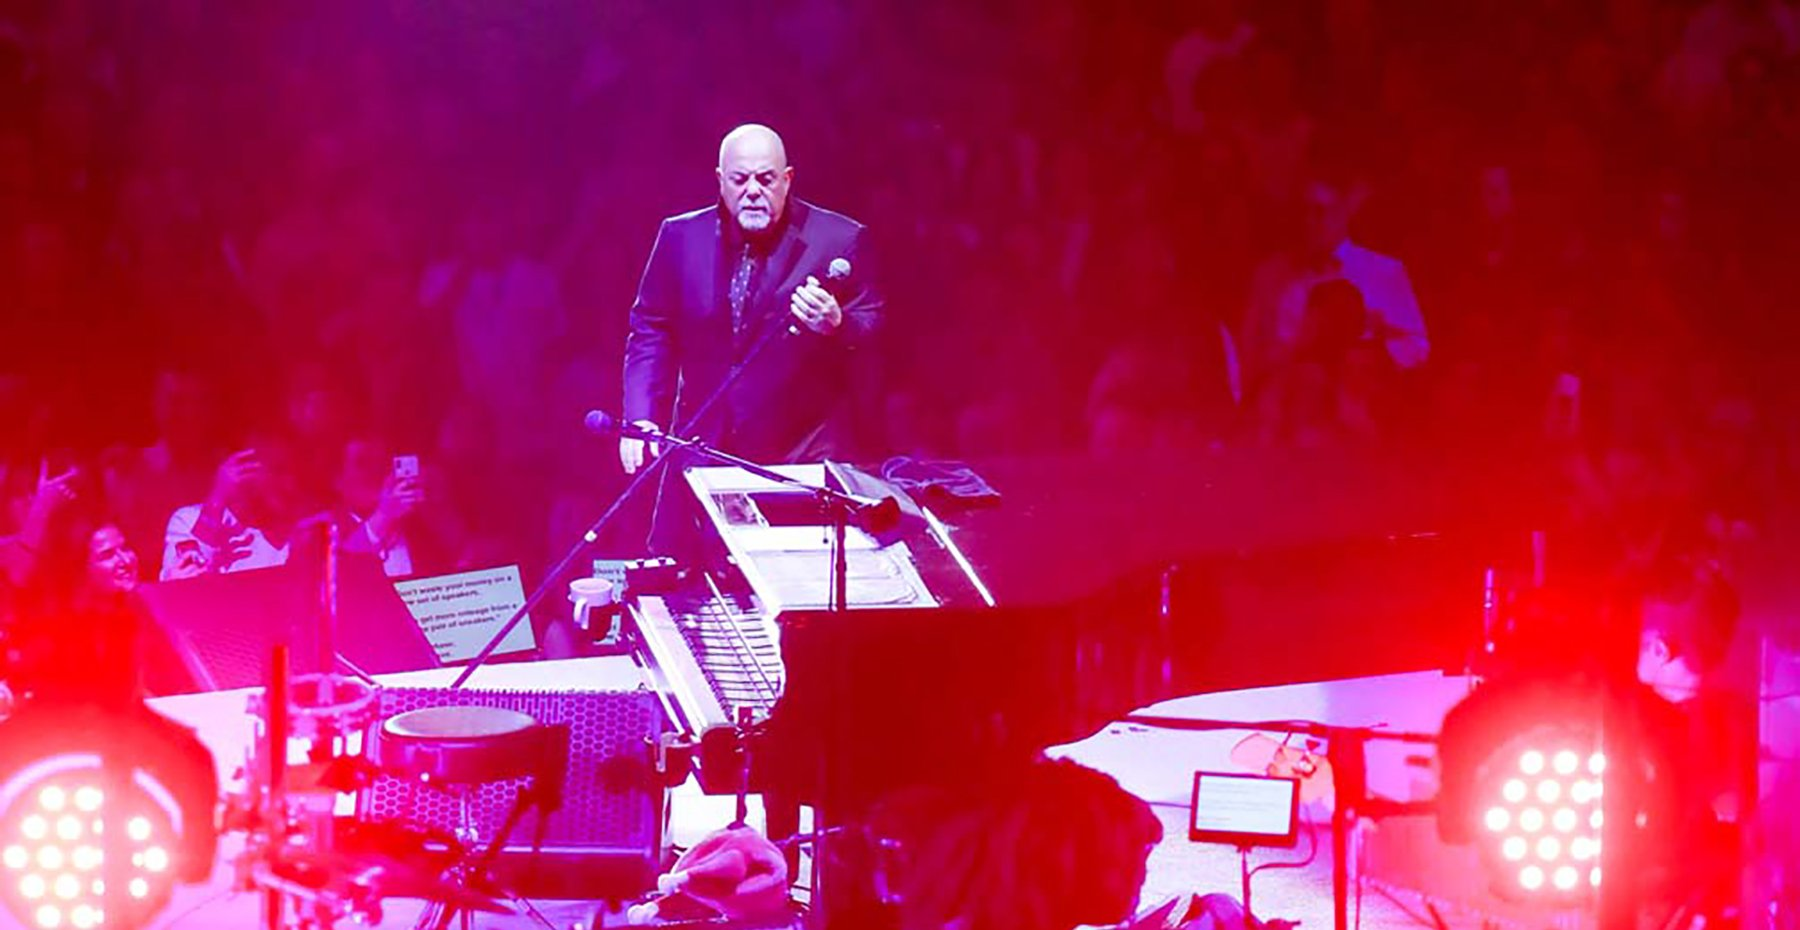 Billy Joel Concert At Madison Square Garden in New York, NY – November 15, 2019